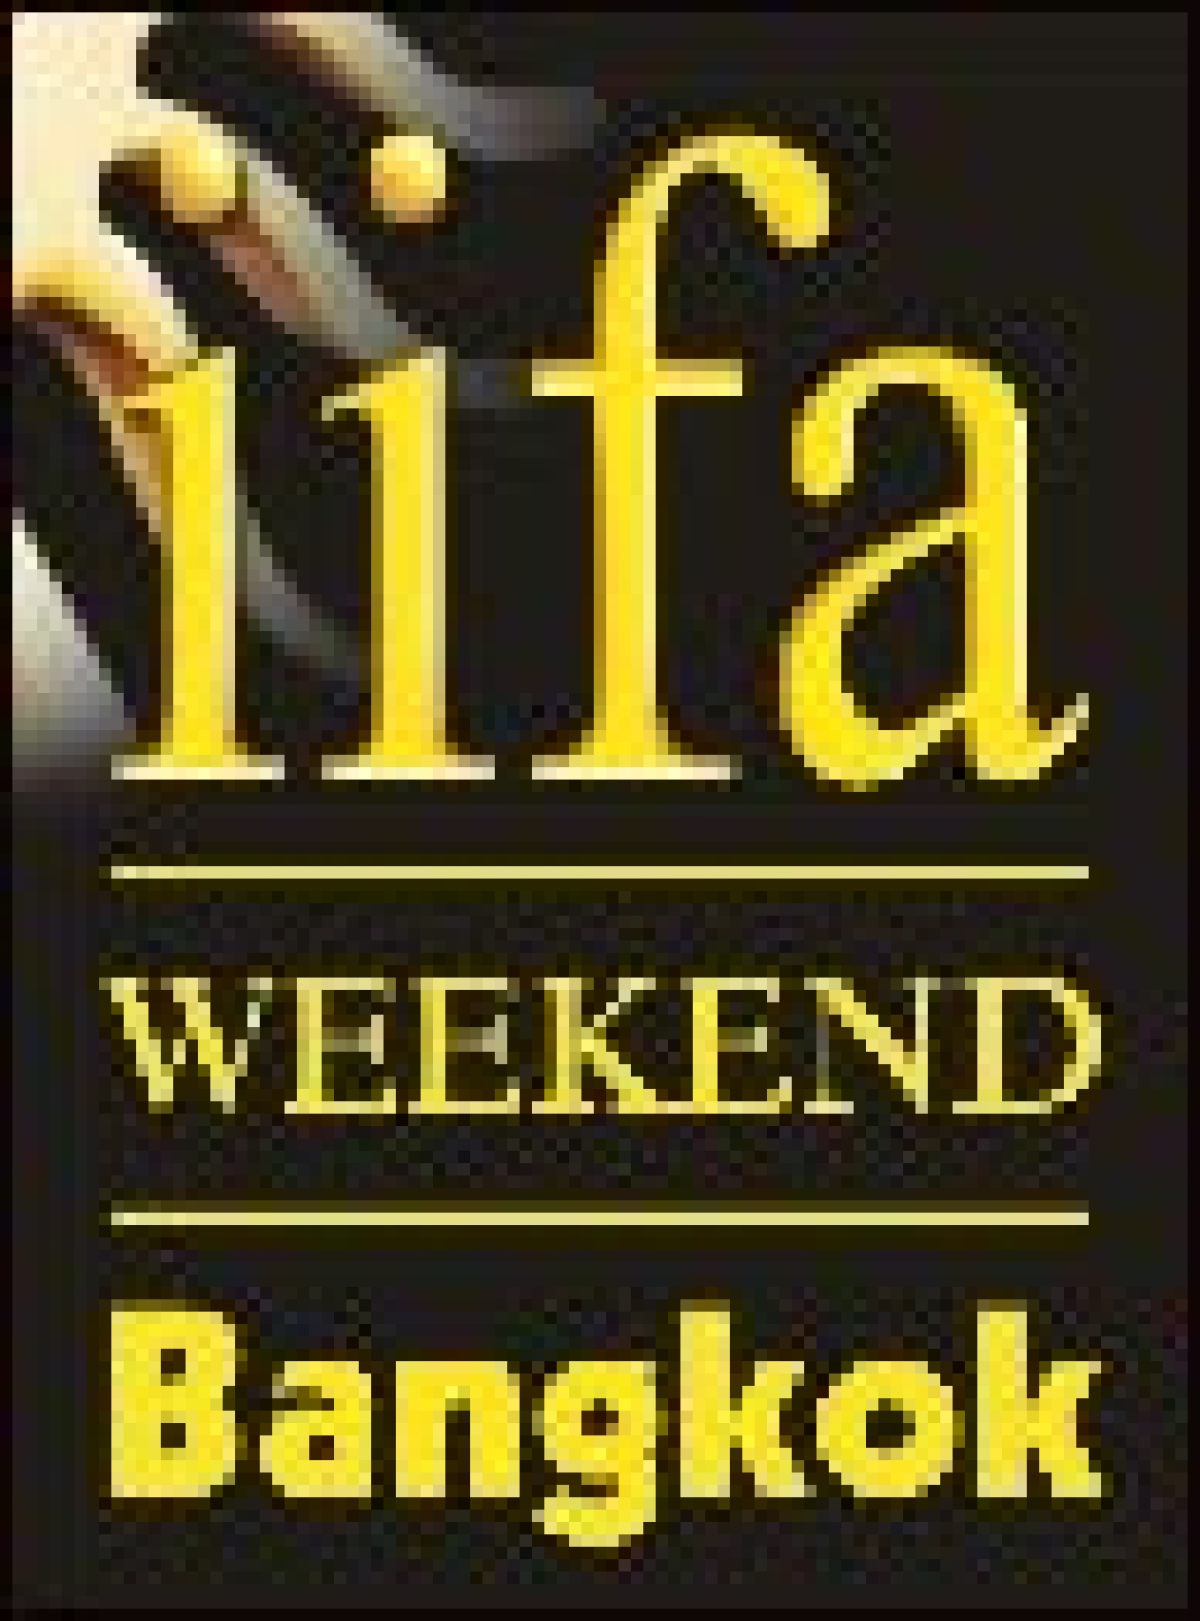 Special category winners for IDEA IIFA Awards 2008 announced